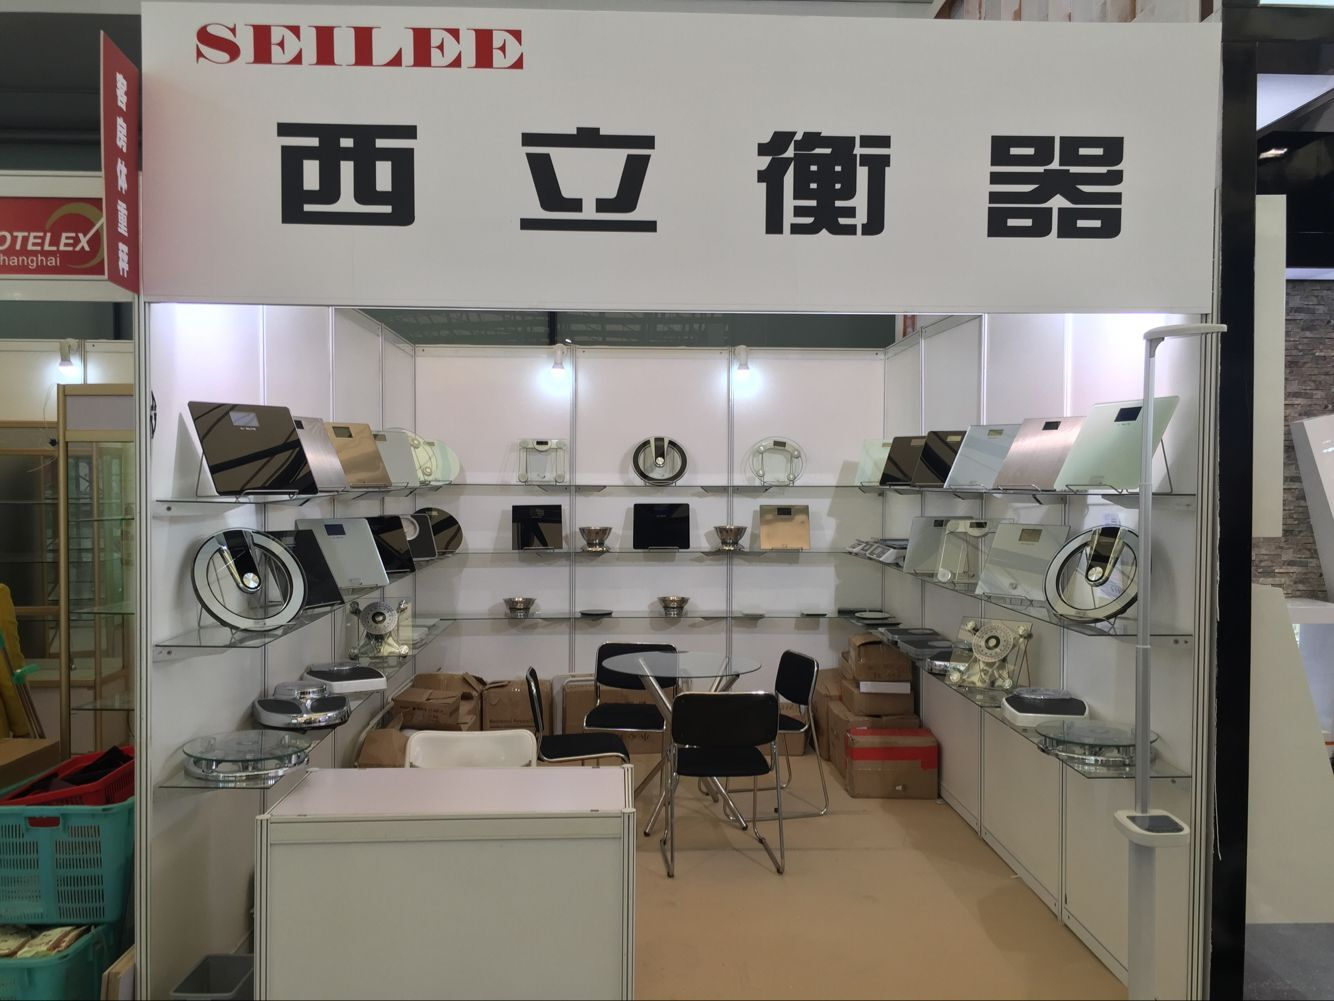 Seilee-THE 25th HOTELEX SHANGHAI EXPO FINEFOOD 2016